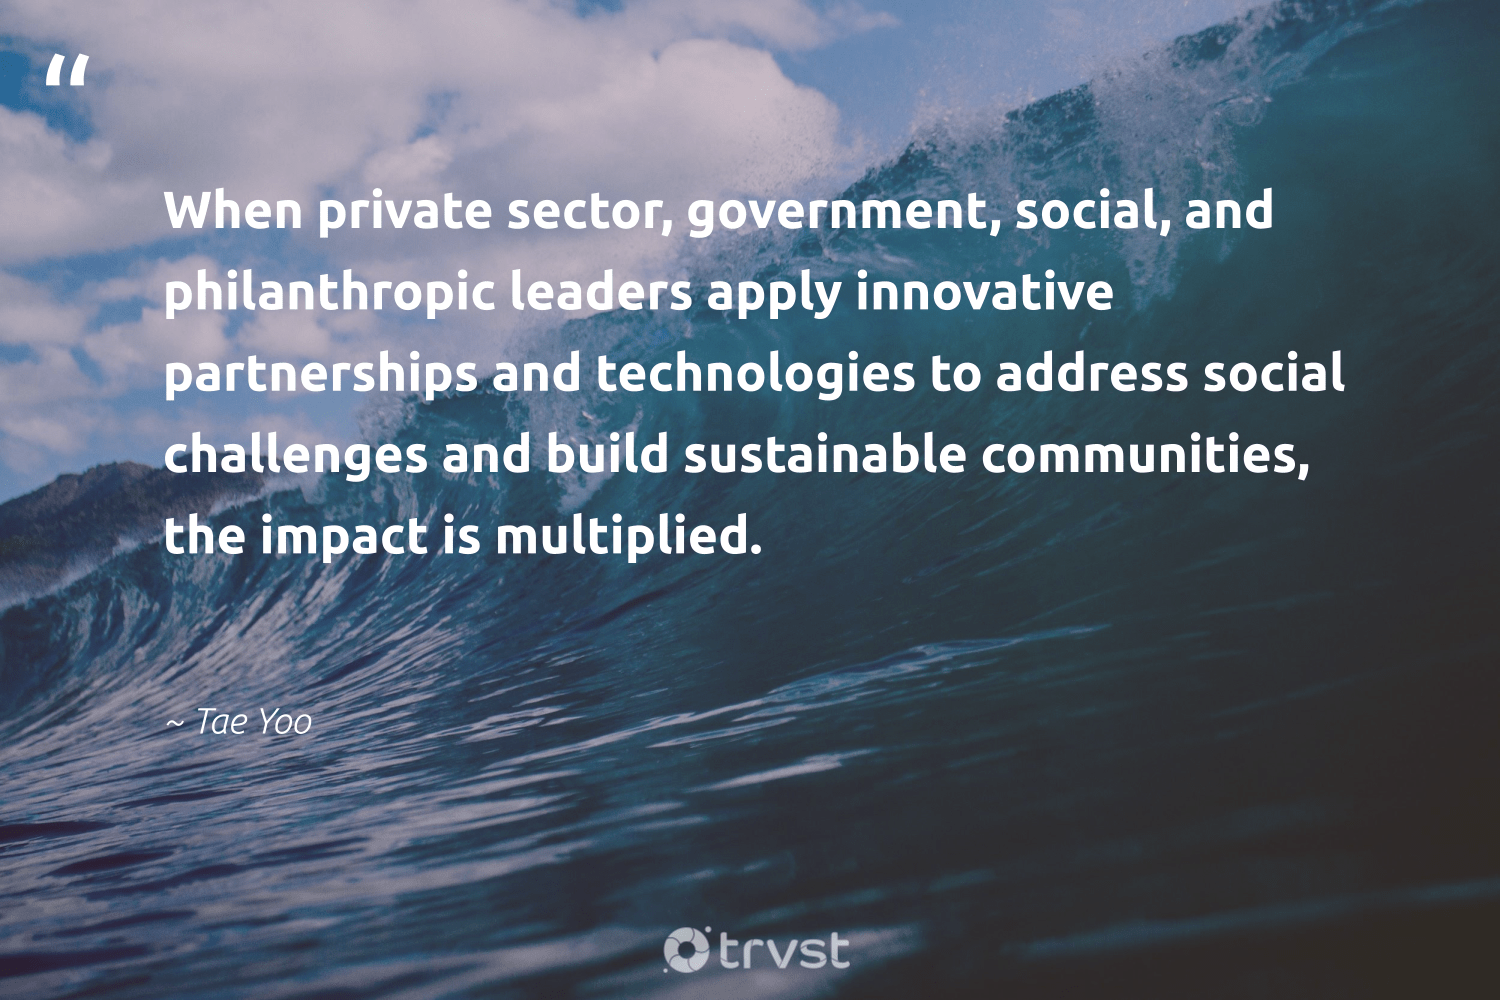 """""""When private sector, government, social, and philanthropic leaders apply innovative partnerships and technologies to address social challenges and build sustainable communities, the impact is multiplied.""""  - Tae Yoo #trvst #quotes #impact #sustainable #communities #philanthropic #philanthropy #socialchange #itscooltobekind #thinkgreen #weareallone #togetherwecan"""